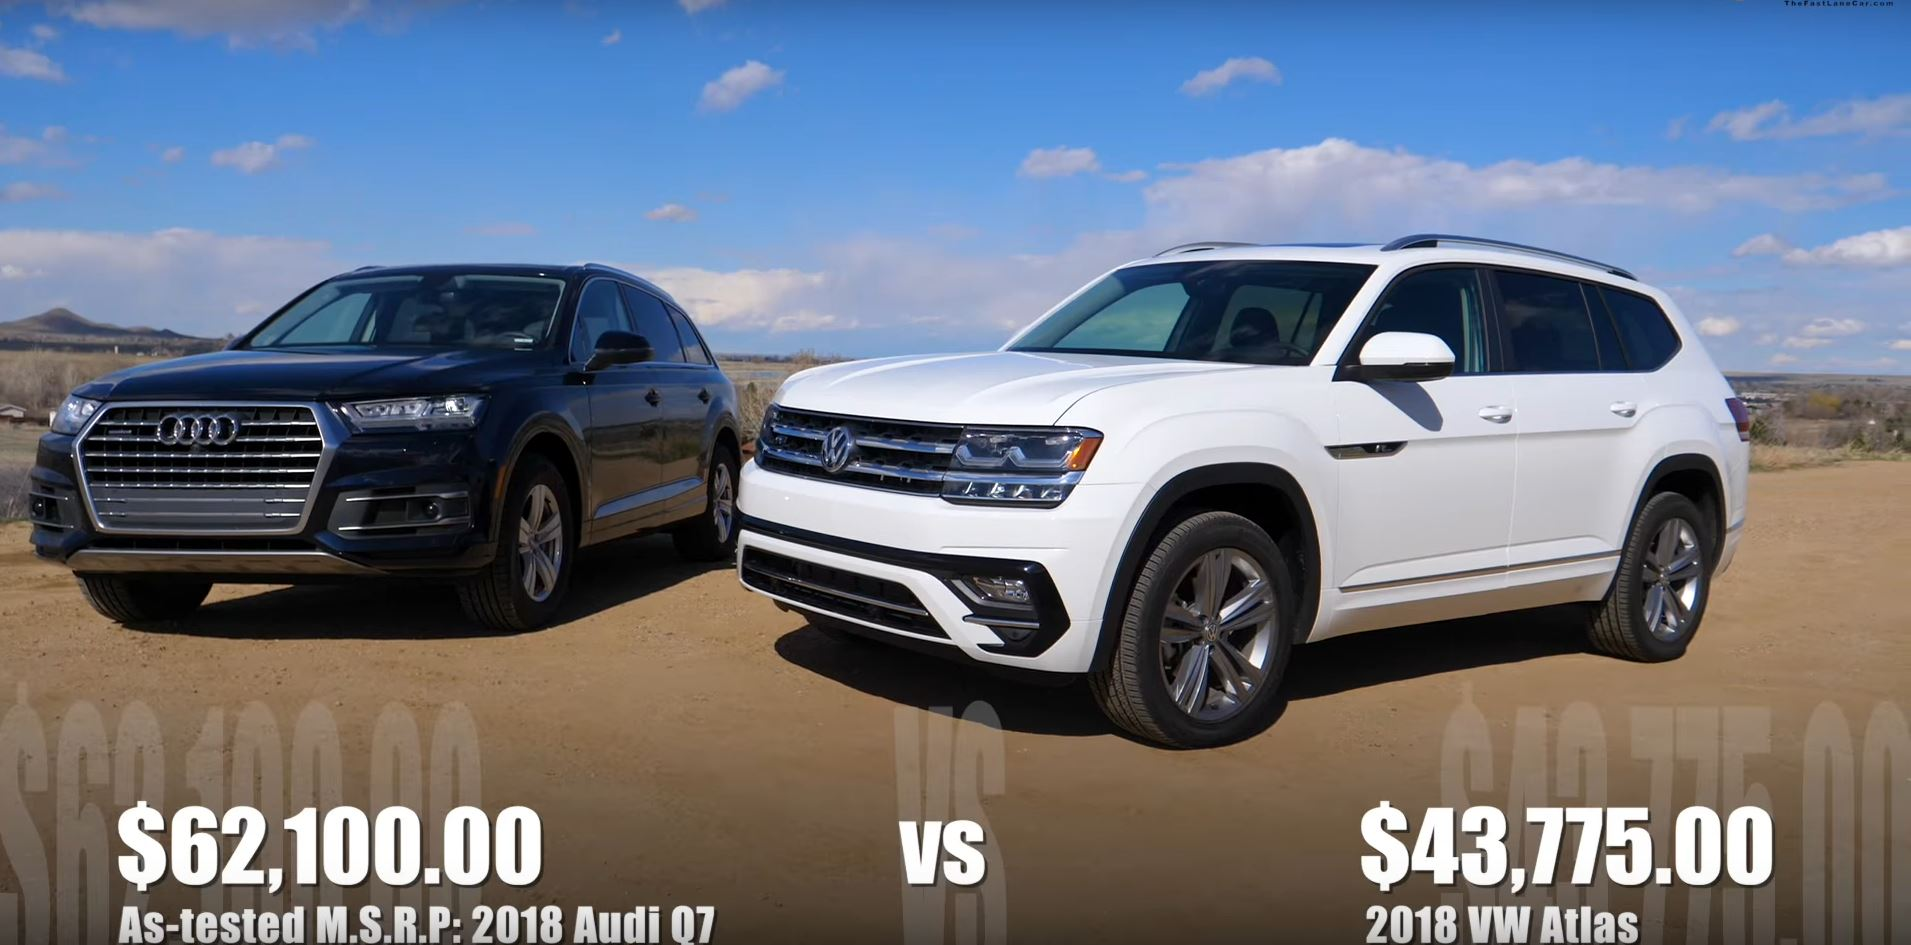 Is the Volkswagen Atlas an Audi Q7 for Less? - autoevolution